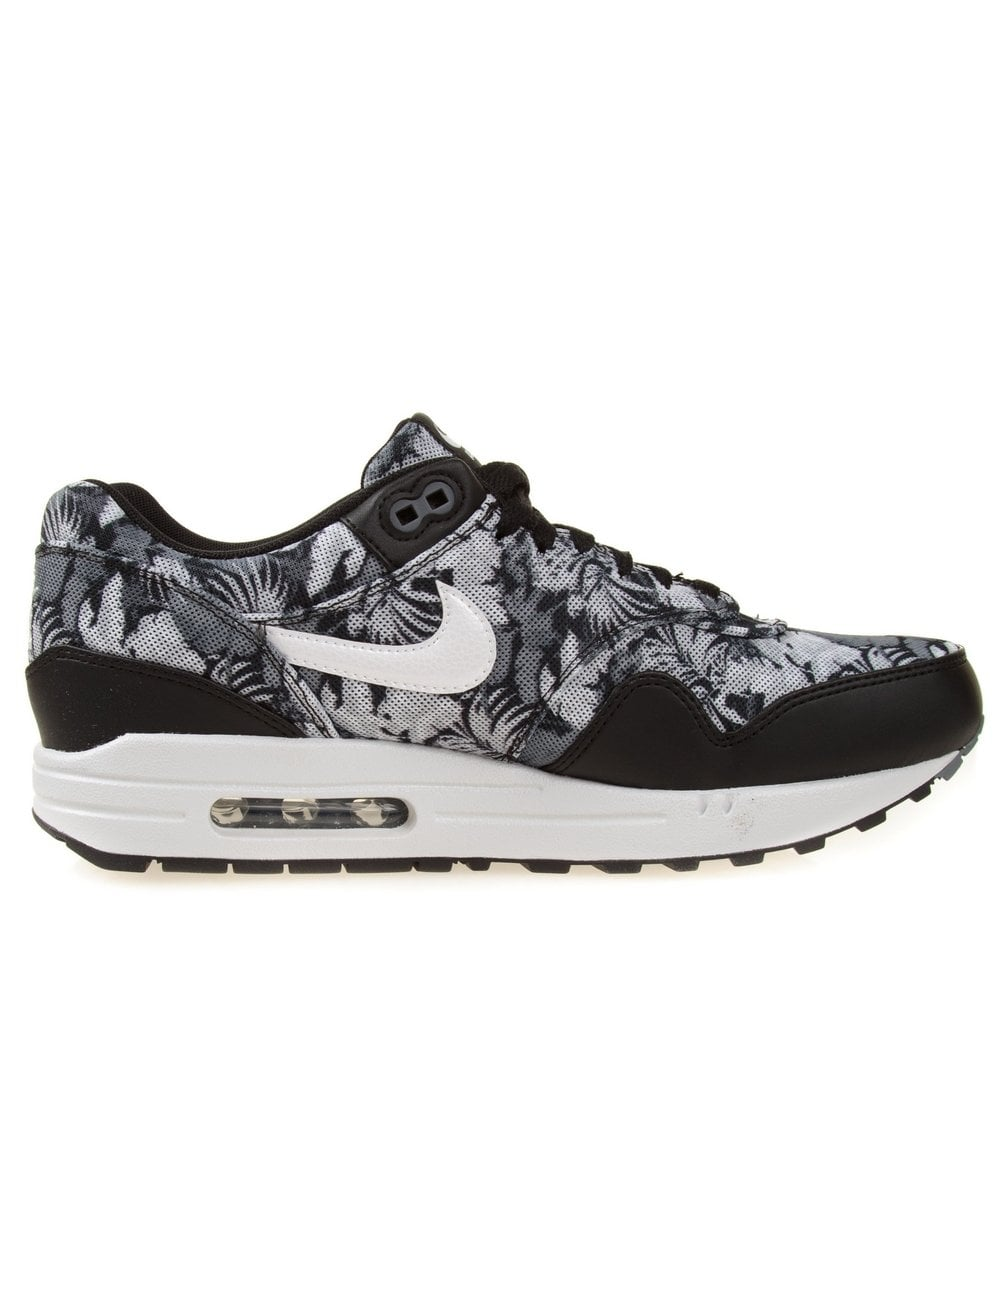 outlet store a474d 3bf24 Nike Air Max 1 GPX - Black White Grey